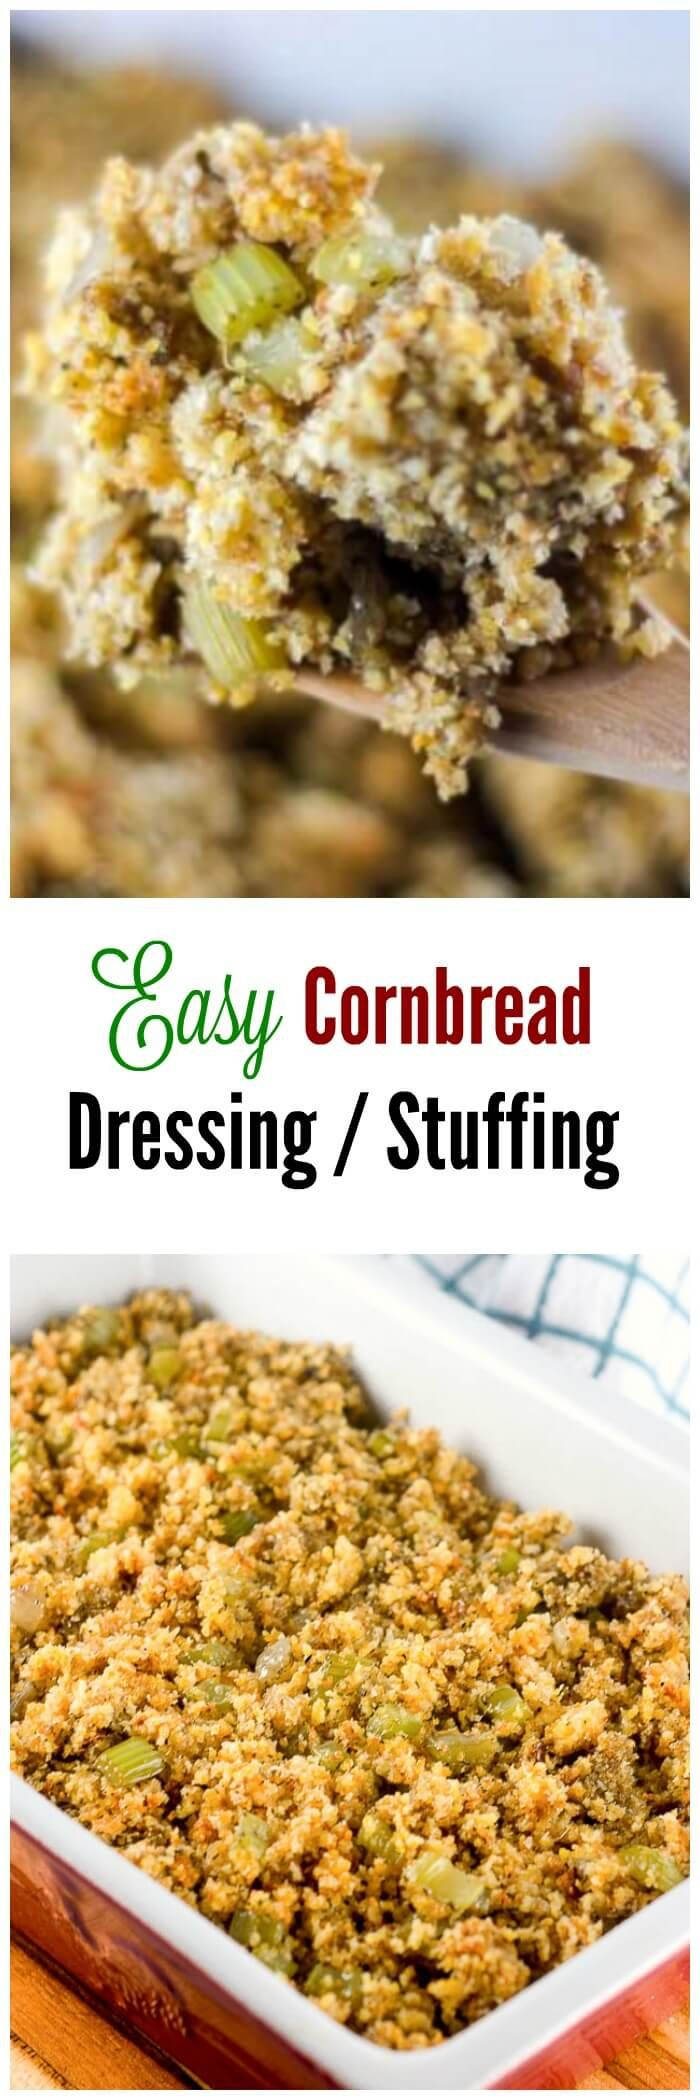 This Easy Cornbread Dressing recipe, or stuffing if you prefer, is a must for a…